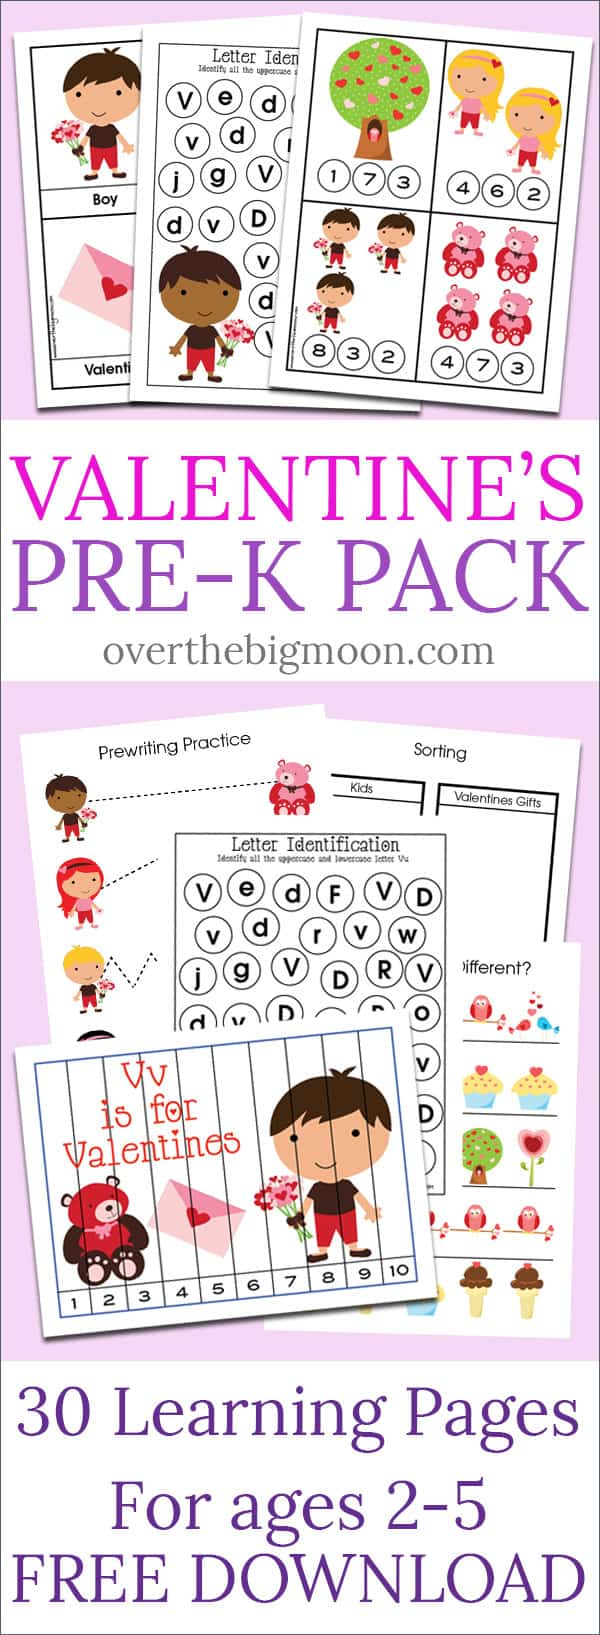 Valentine's Day Pre-K Pack - 30+ pages of fun Pre-K and Kindergarten activities that are Valentine's DayThemed! From overthebigmoon.com